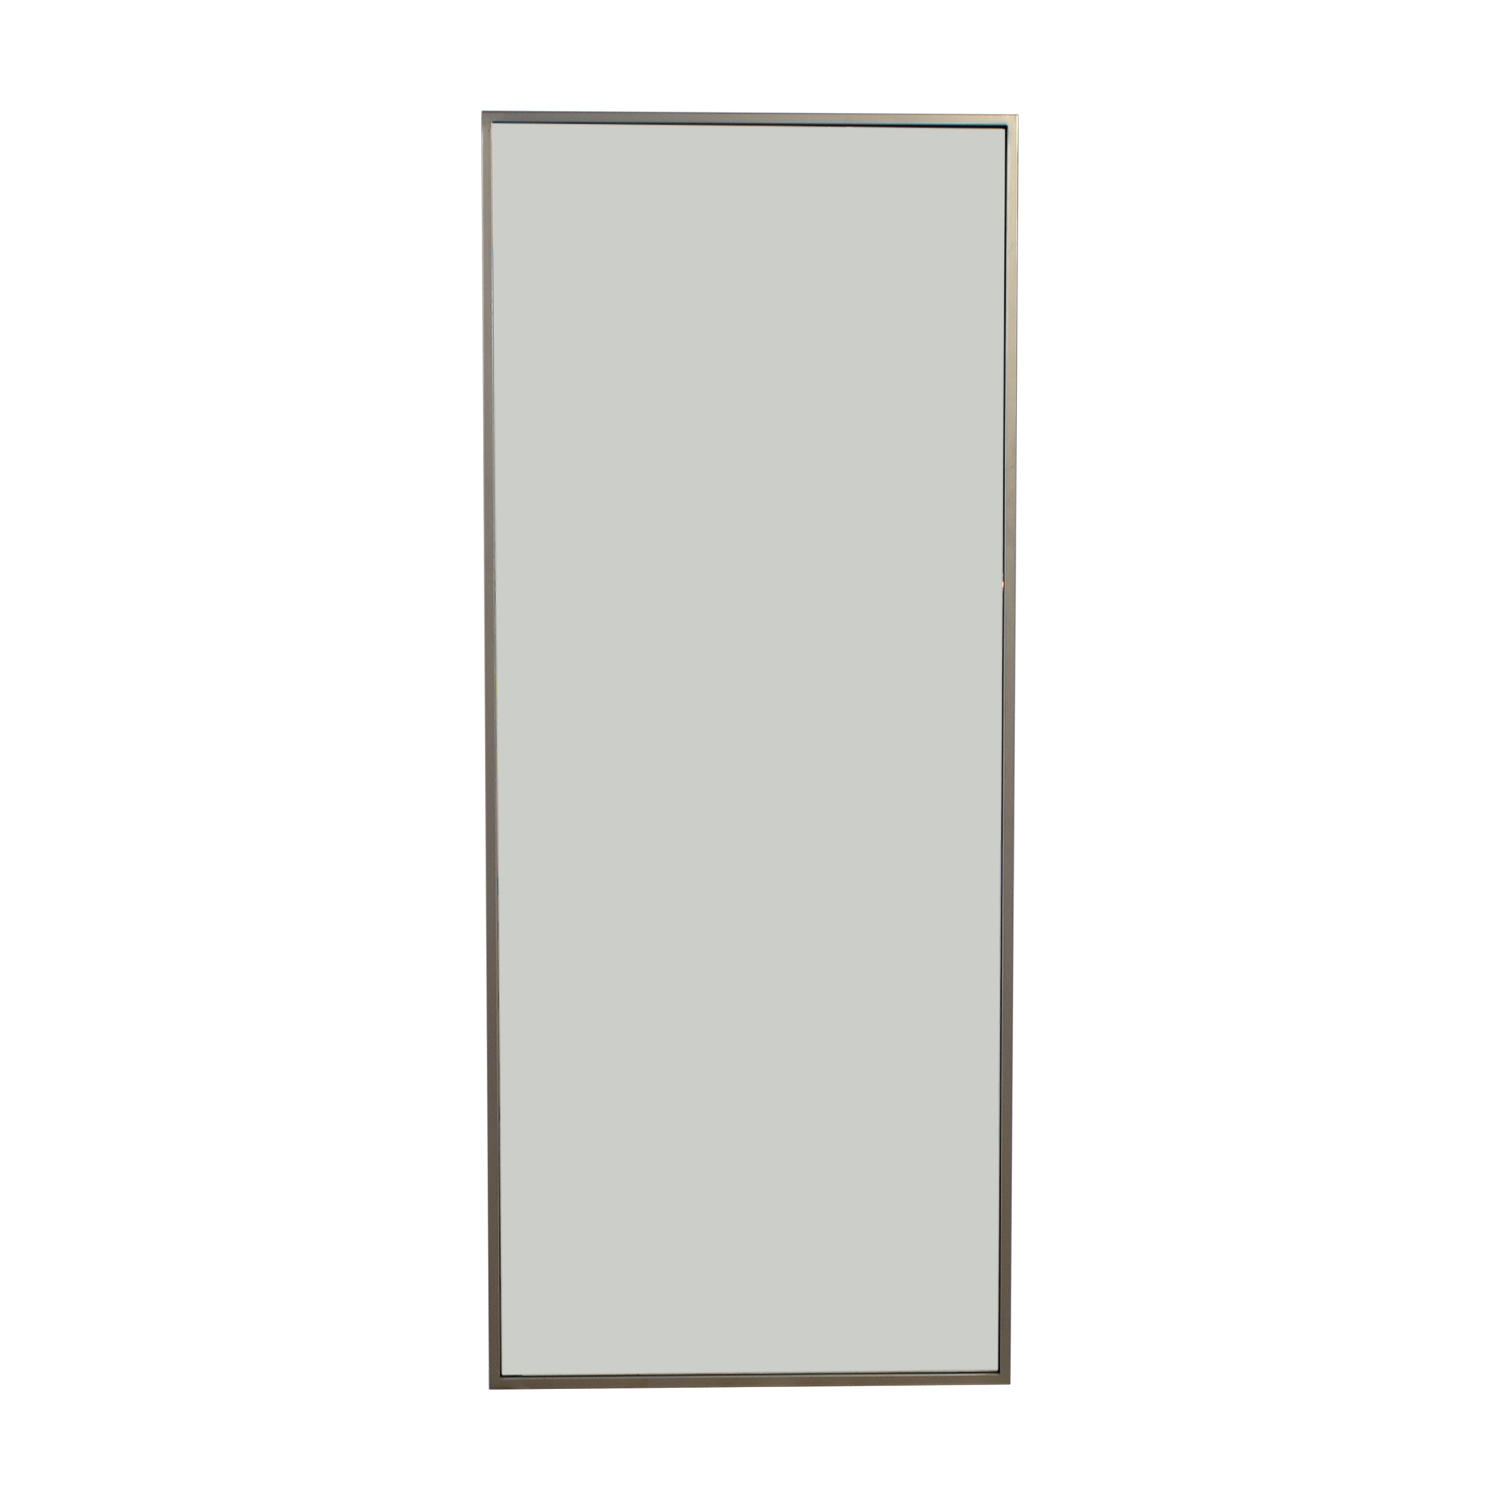 shop West Elm West Elm Metal Floor Mirror online